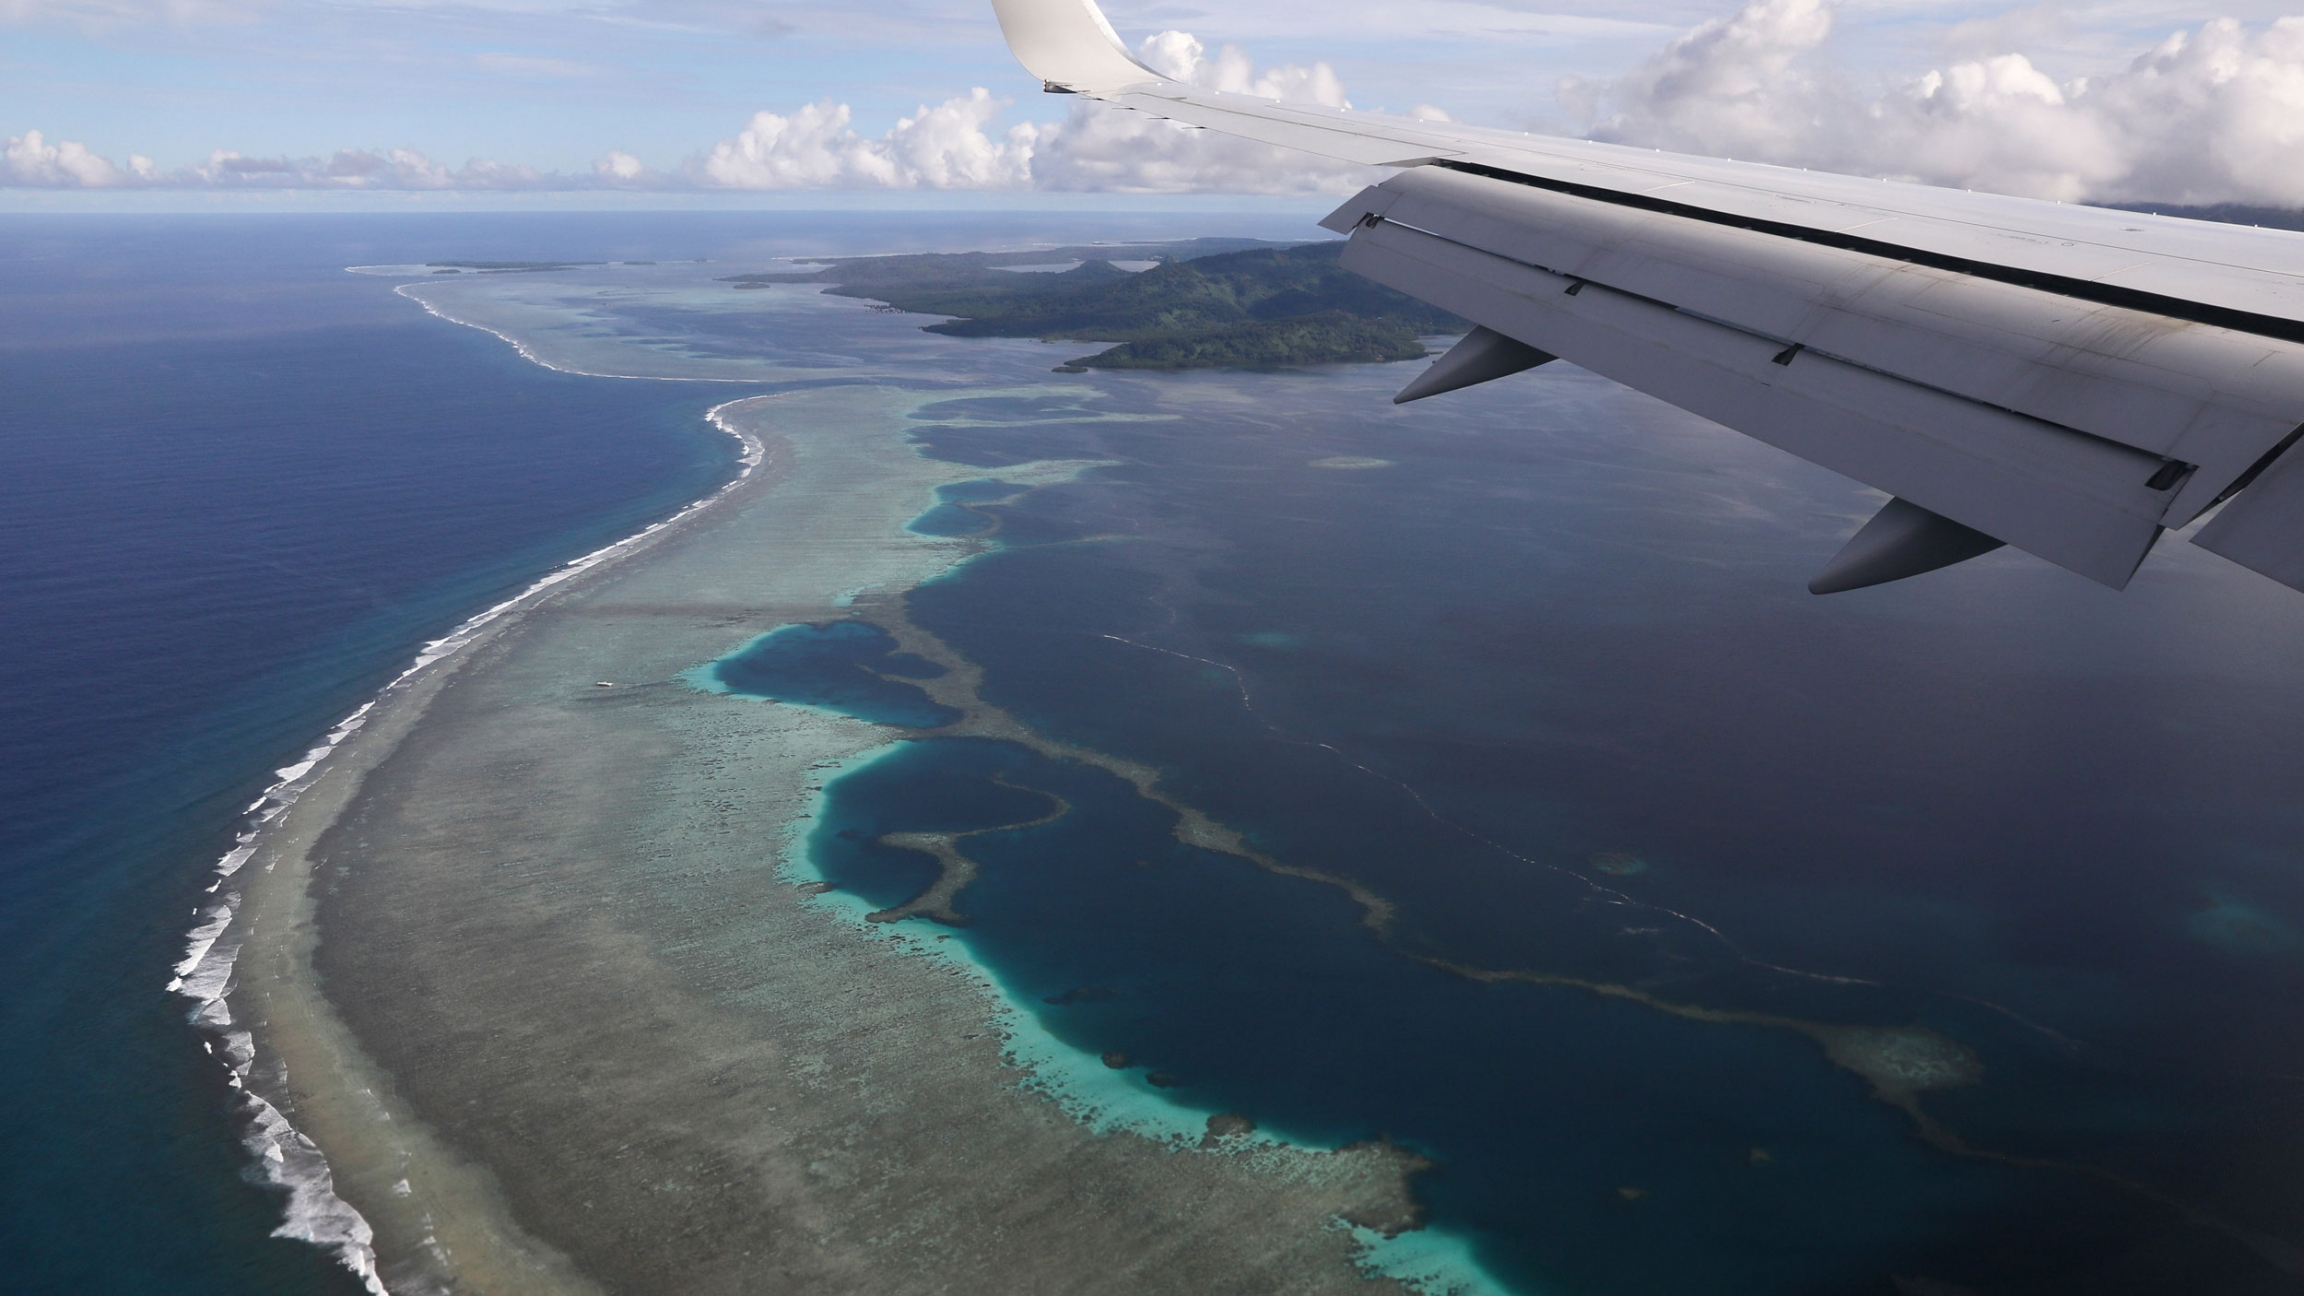 Former US Secretary of State Mike Pompeo's plane makes its landing approach on Pohnpei International Airport in Kolonia, Federated States of Micronesia, Monday, Aug. 5, 2019.